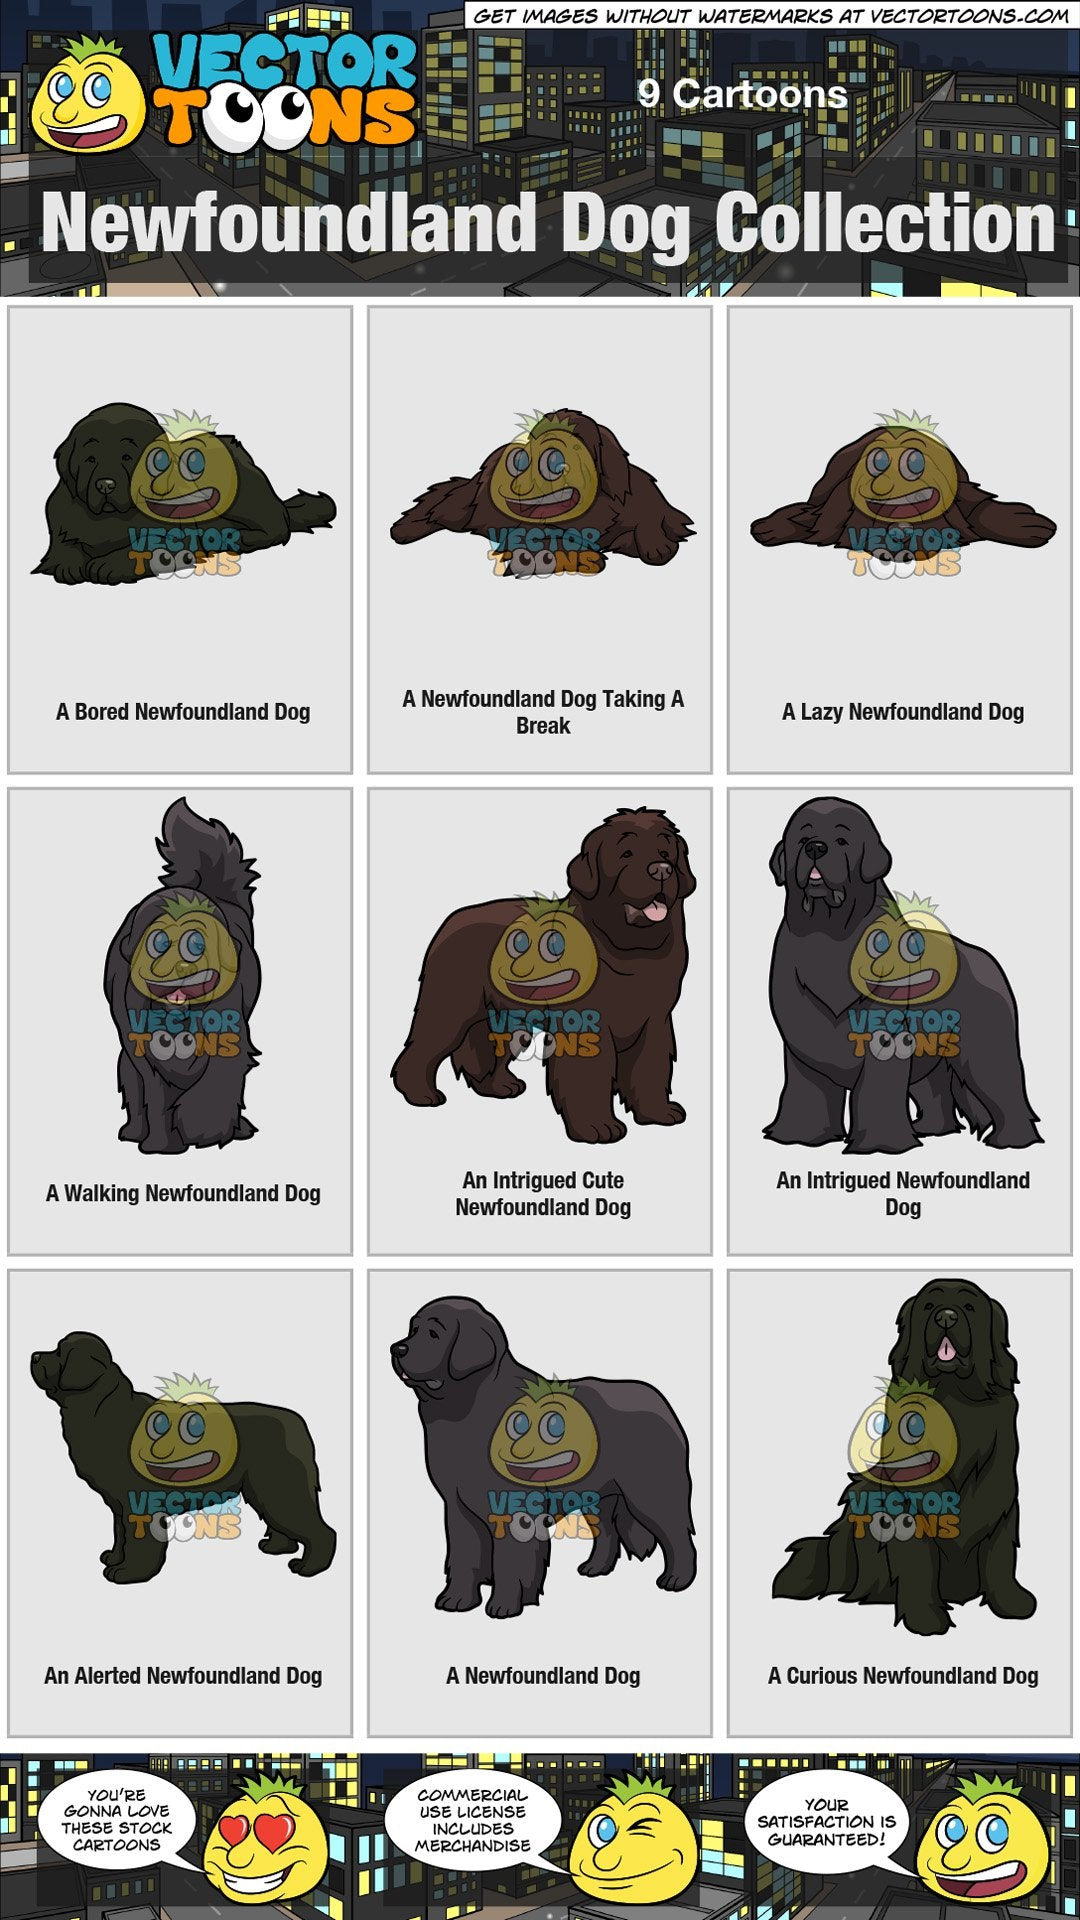 Newfoundland Dog Collection